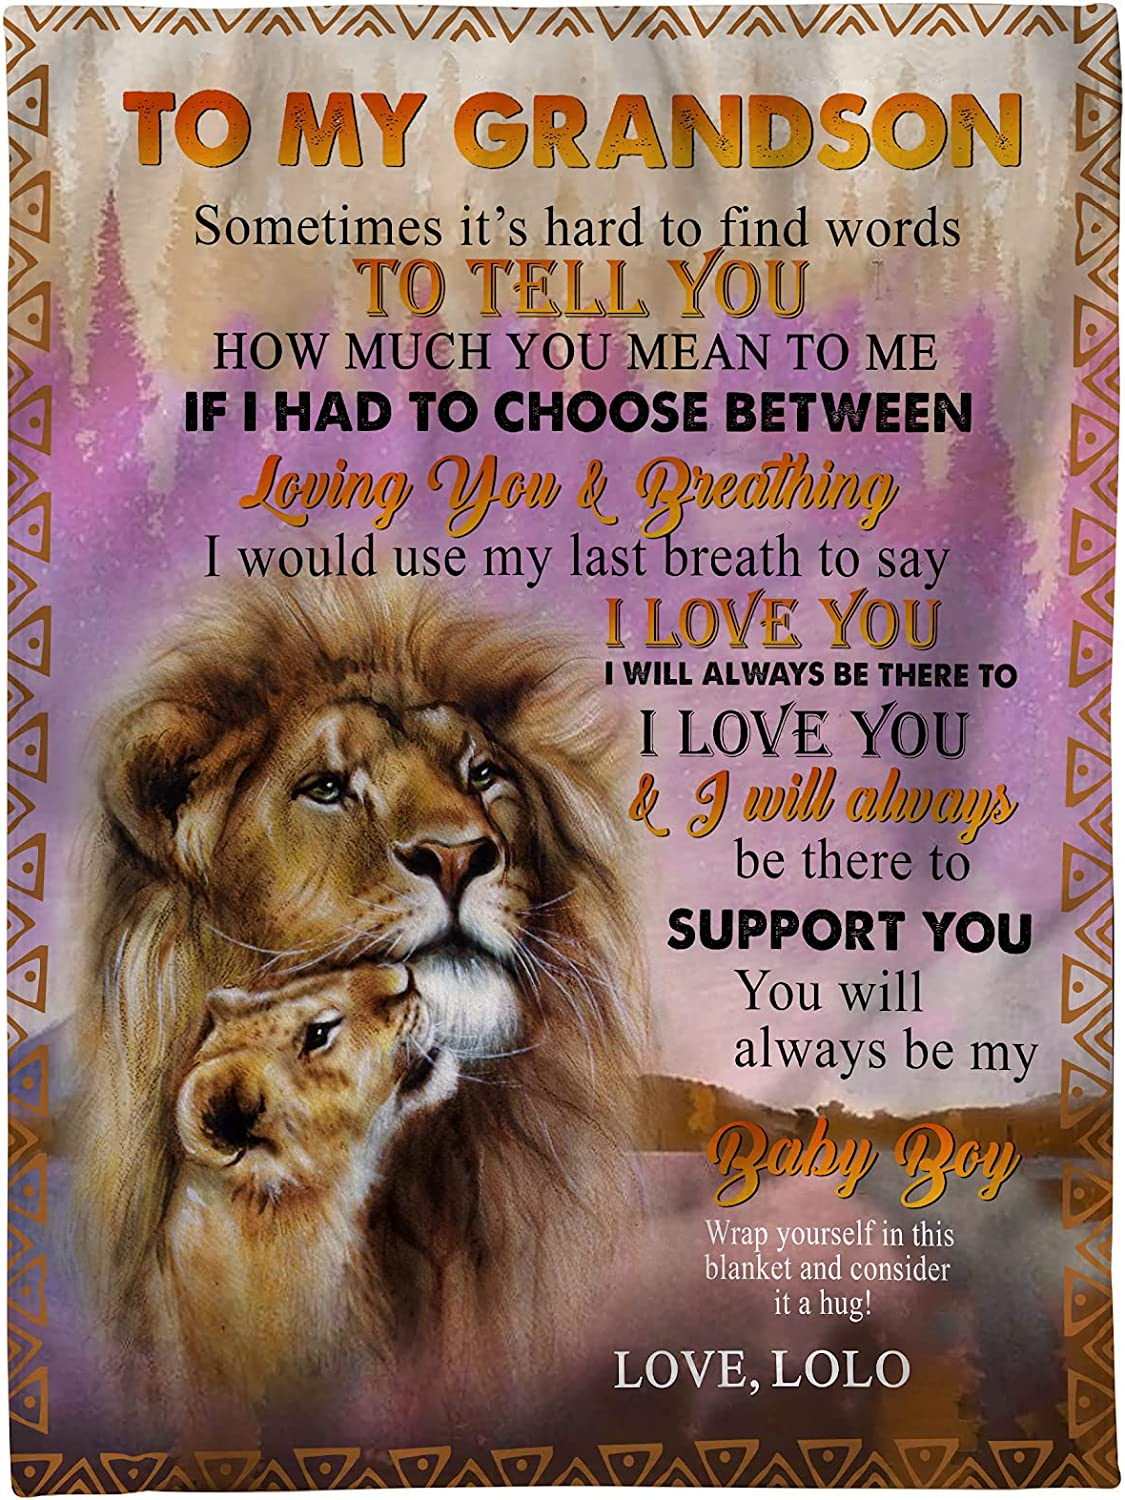 Personalized free Blanket-to My Grandson Lion Brand Cheap Sale Venue You Always Support Love